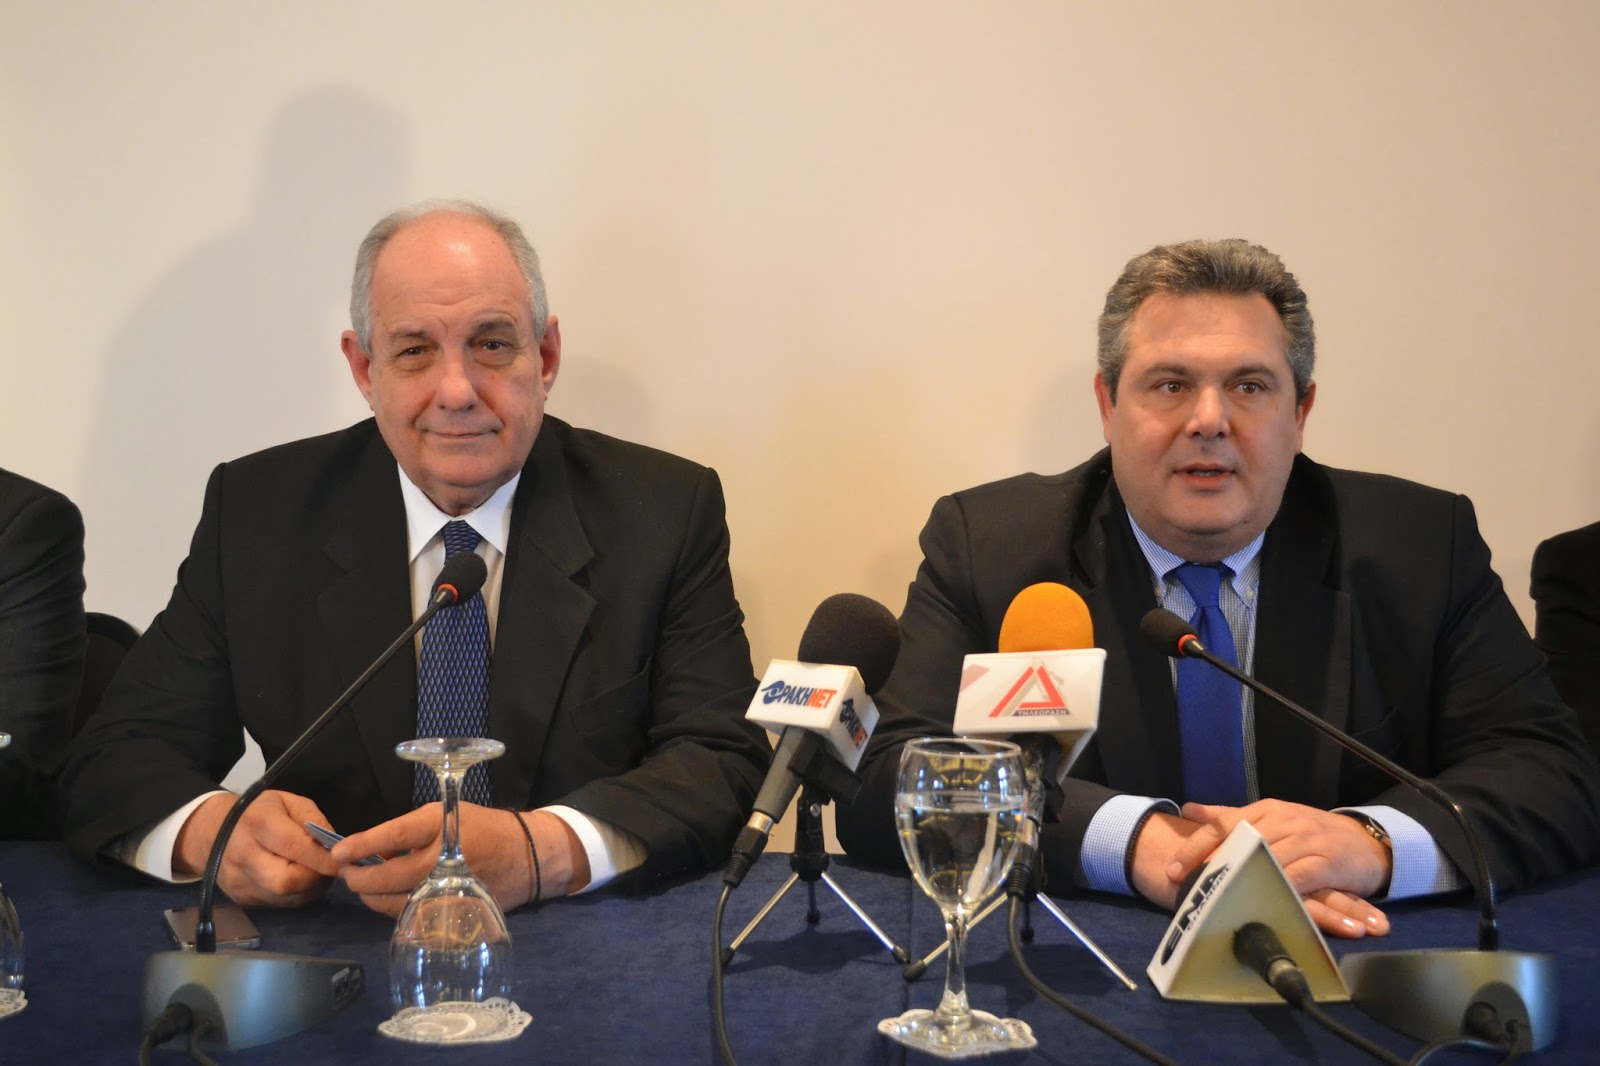 Kammenos: 'Our priority is National sovereignty and accountability for the Bankruptcy